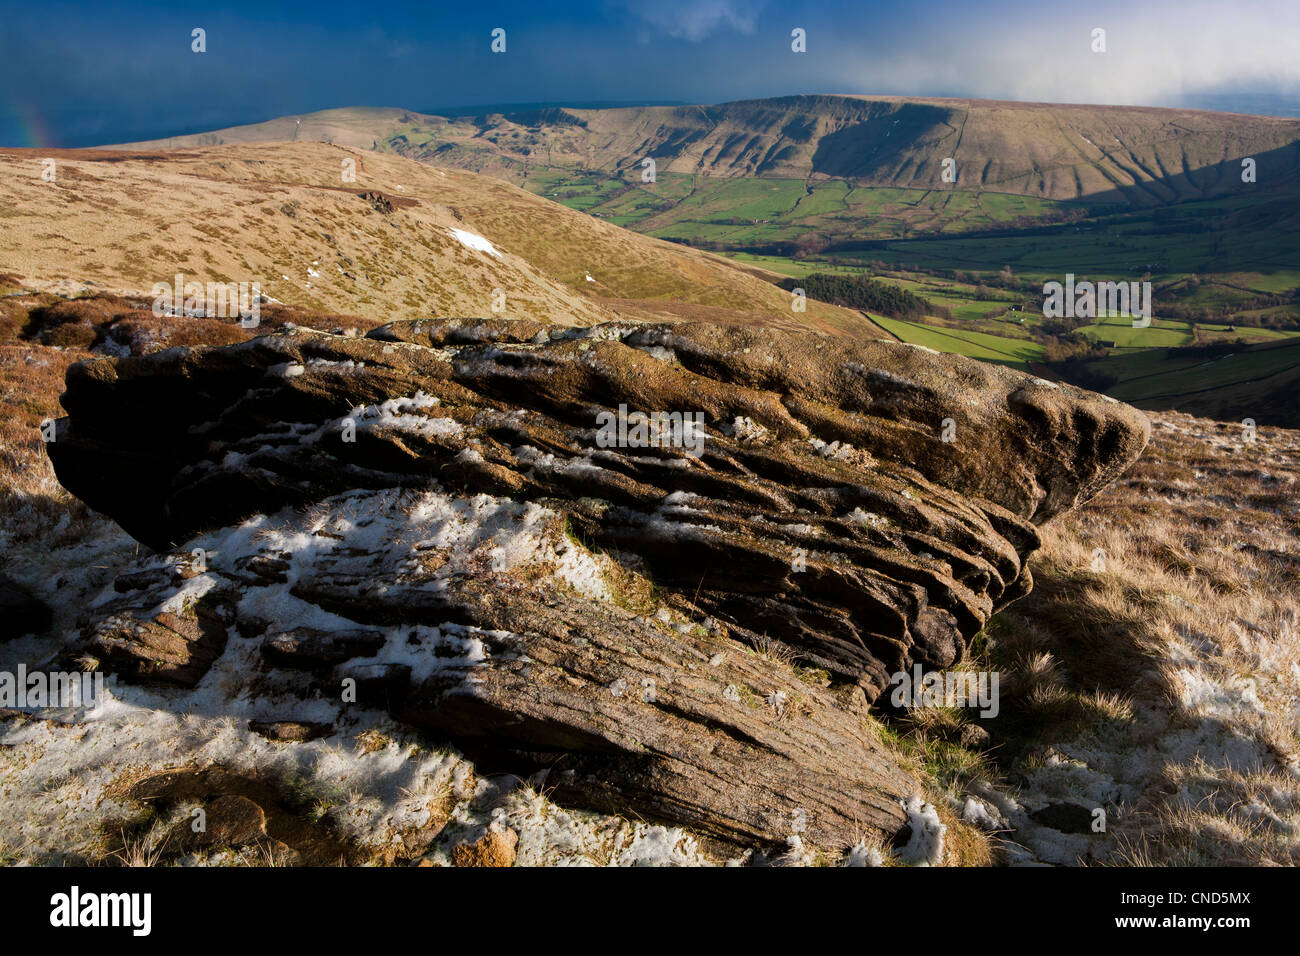 A view from the Kinder Plateau, Kinder Scout, Peak District, Derbyshire, England, UK - Stock Image